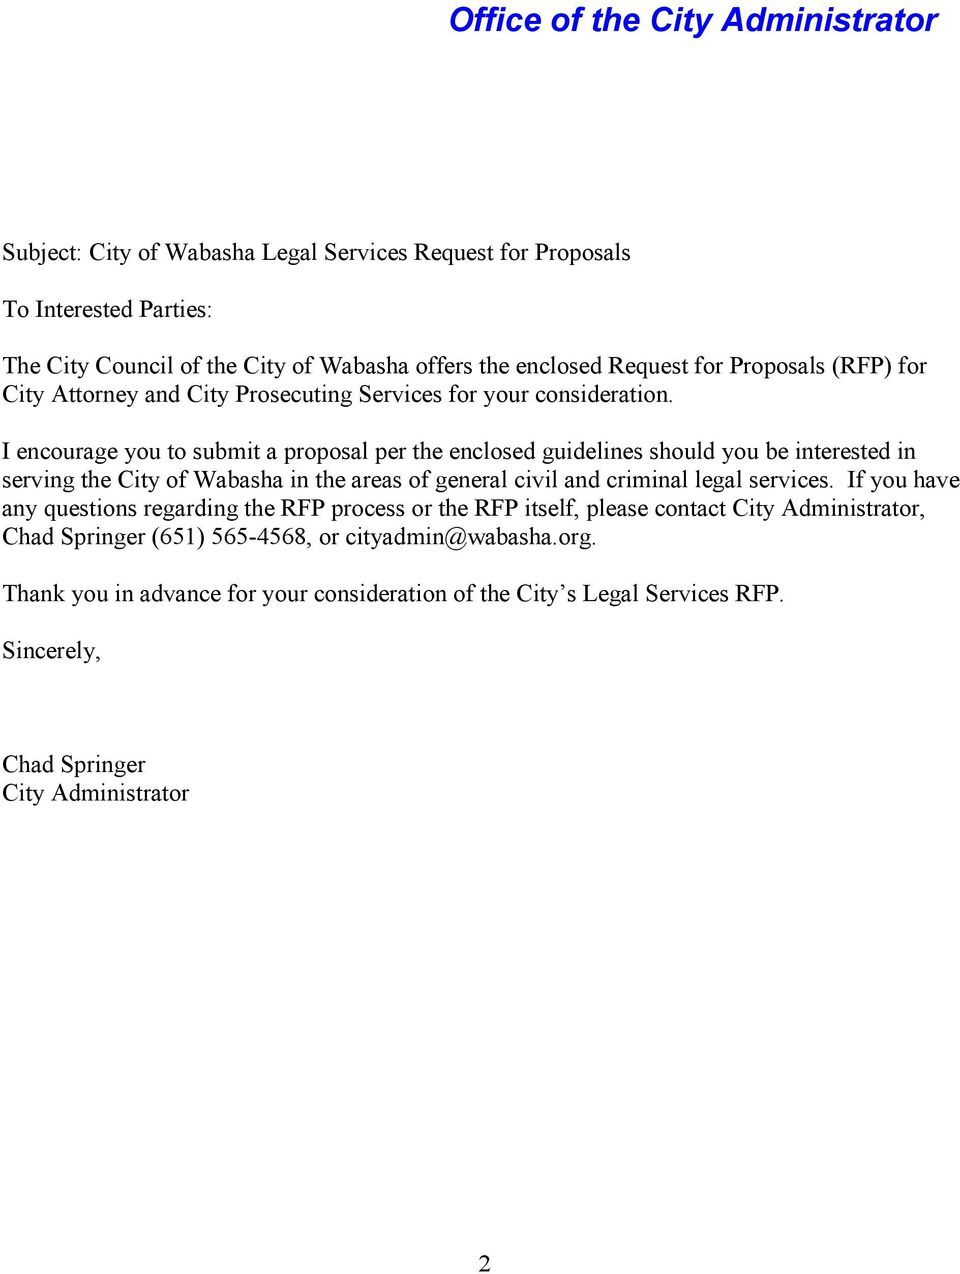 I encourage you to submit a proposal per the enclosed guidelines should you be interested in serving the City of Wabasha in the areas of general civil and criminal legal services.